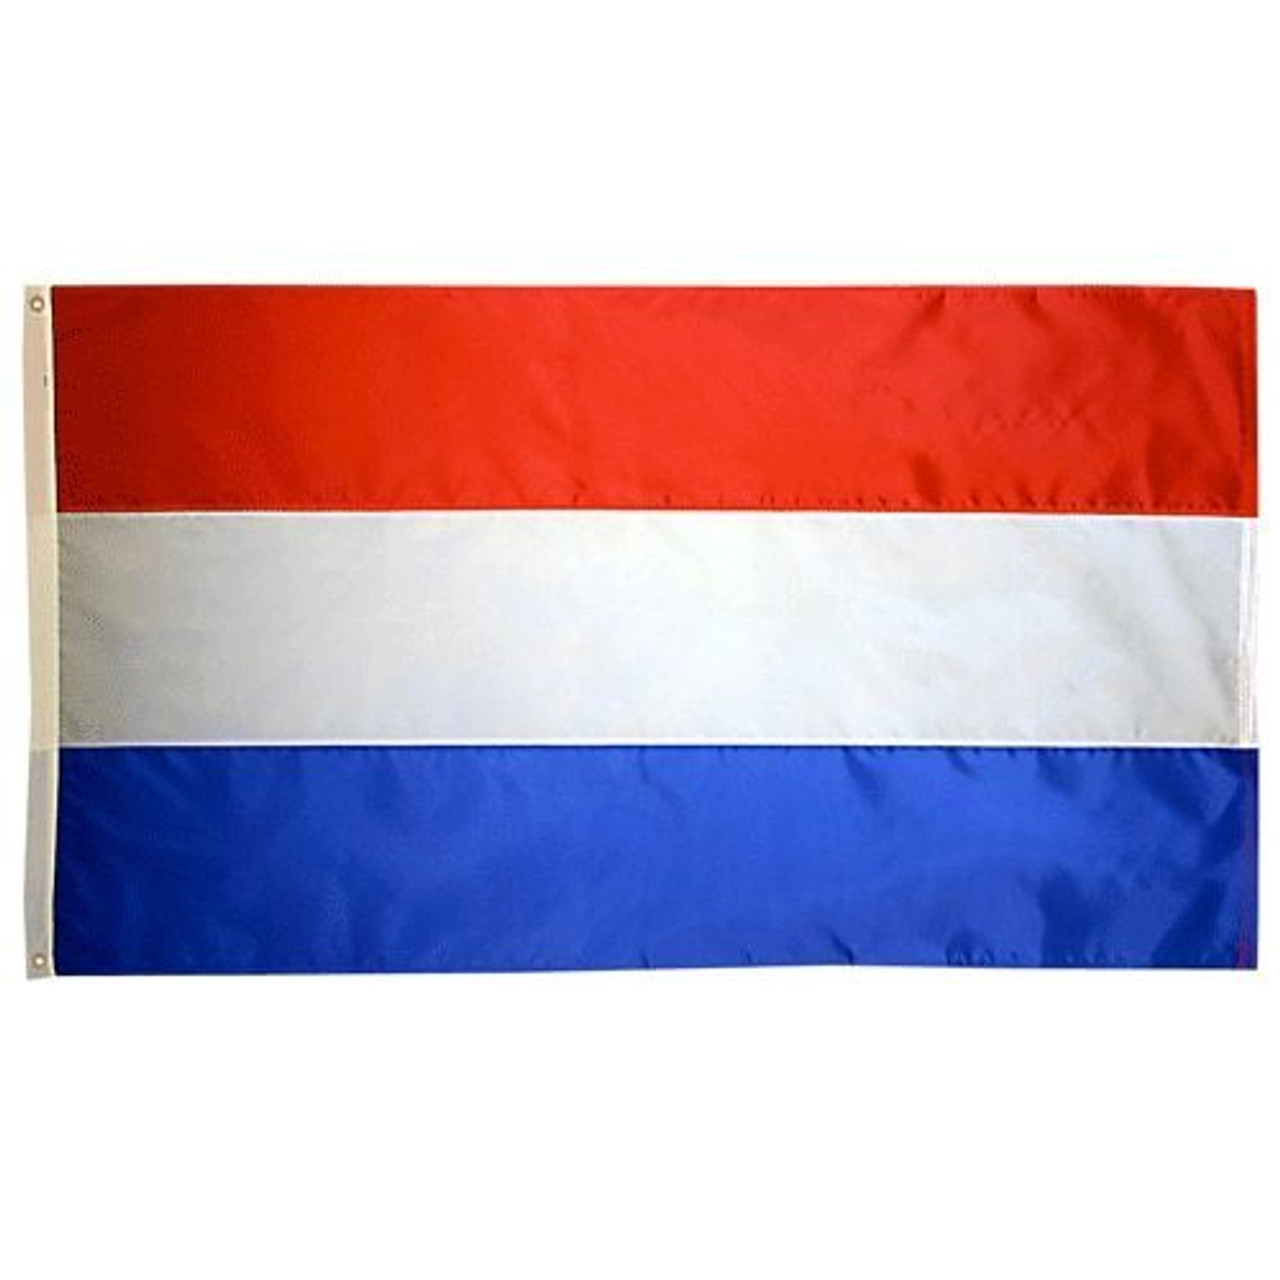 The flag of the Netherlands consists of three horizontal stripes: red over white over blue. On the left side of the flag is a canvas header with brass grommets for easy attachment to flagpoles.